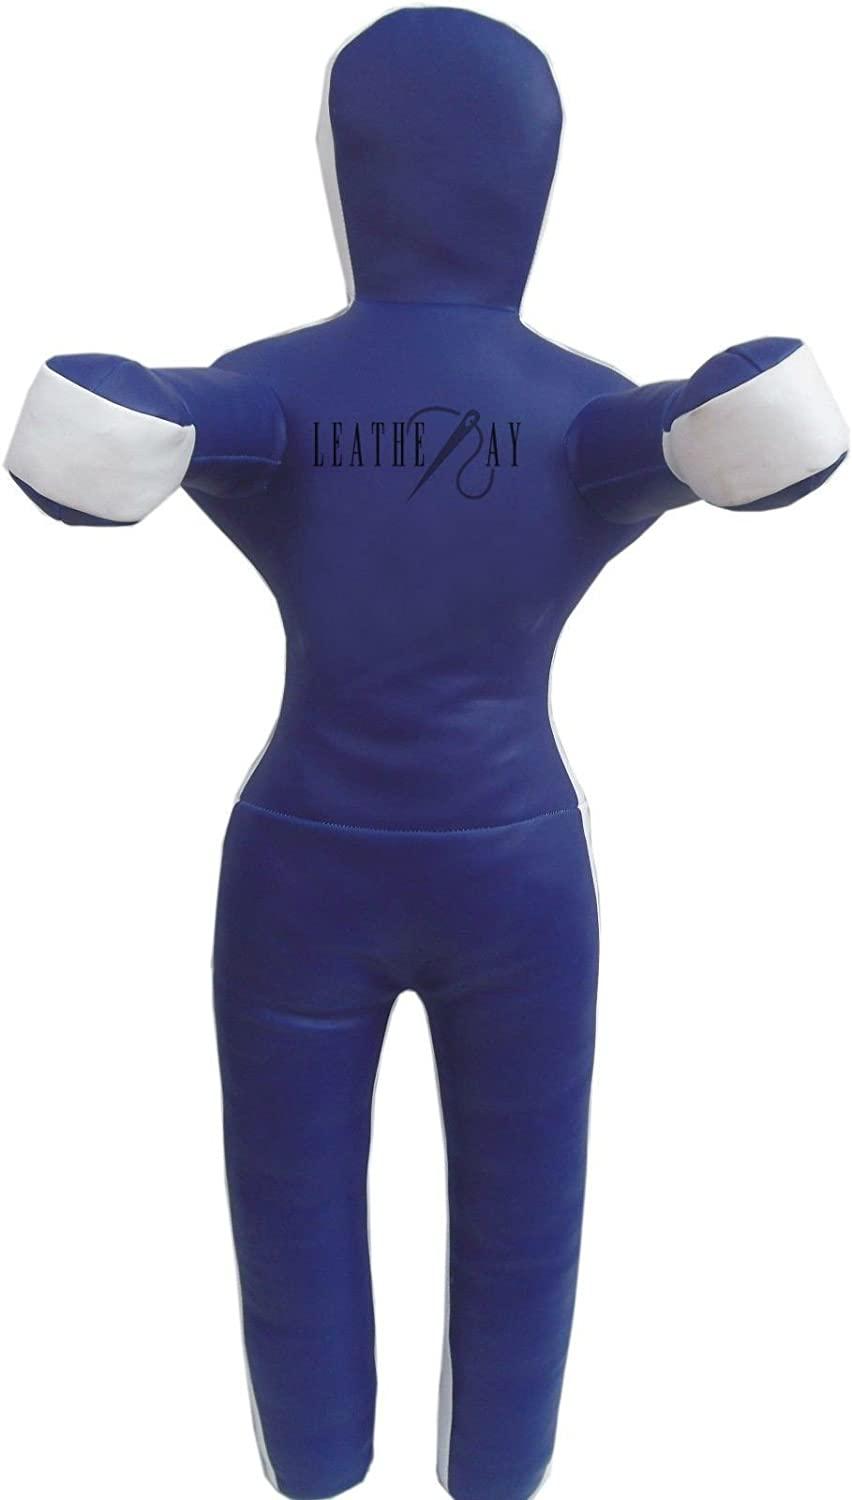 leatheray MMA Jiu 59 Jitsu柔道Punching Bag Synthetic ft) Grapplingダミーブルー – Unfilled 59 inches (5 ft) Synthetic Leather Blue B079TYHQD1, icon contempo:3a014f49 --- capela.dominiotemporario.com